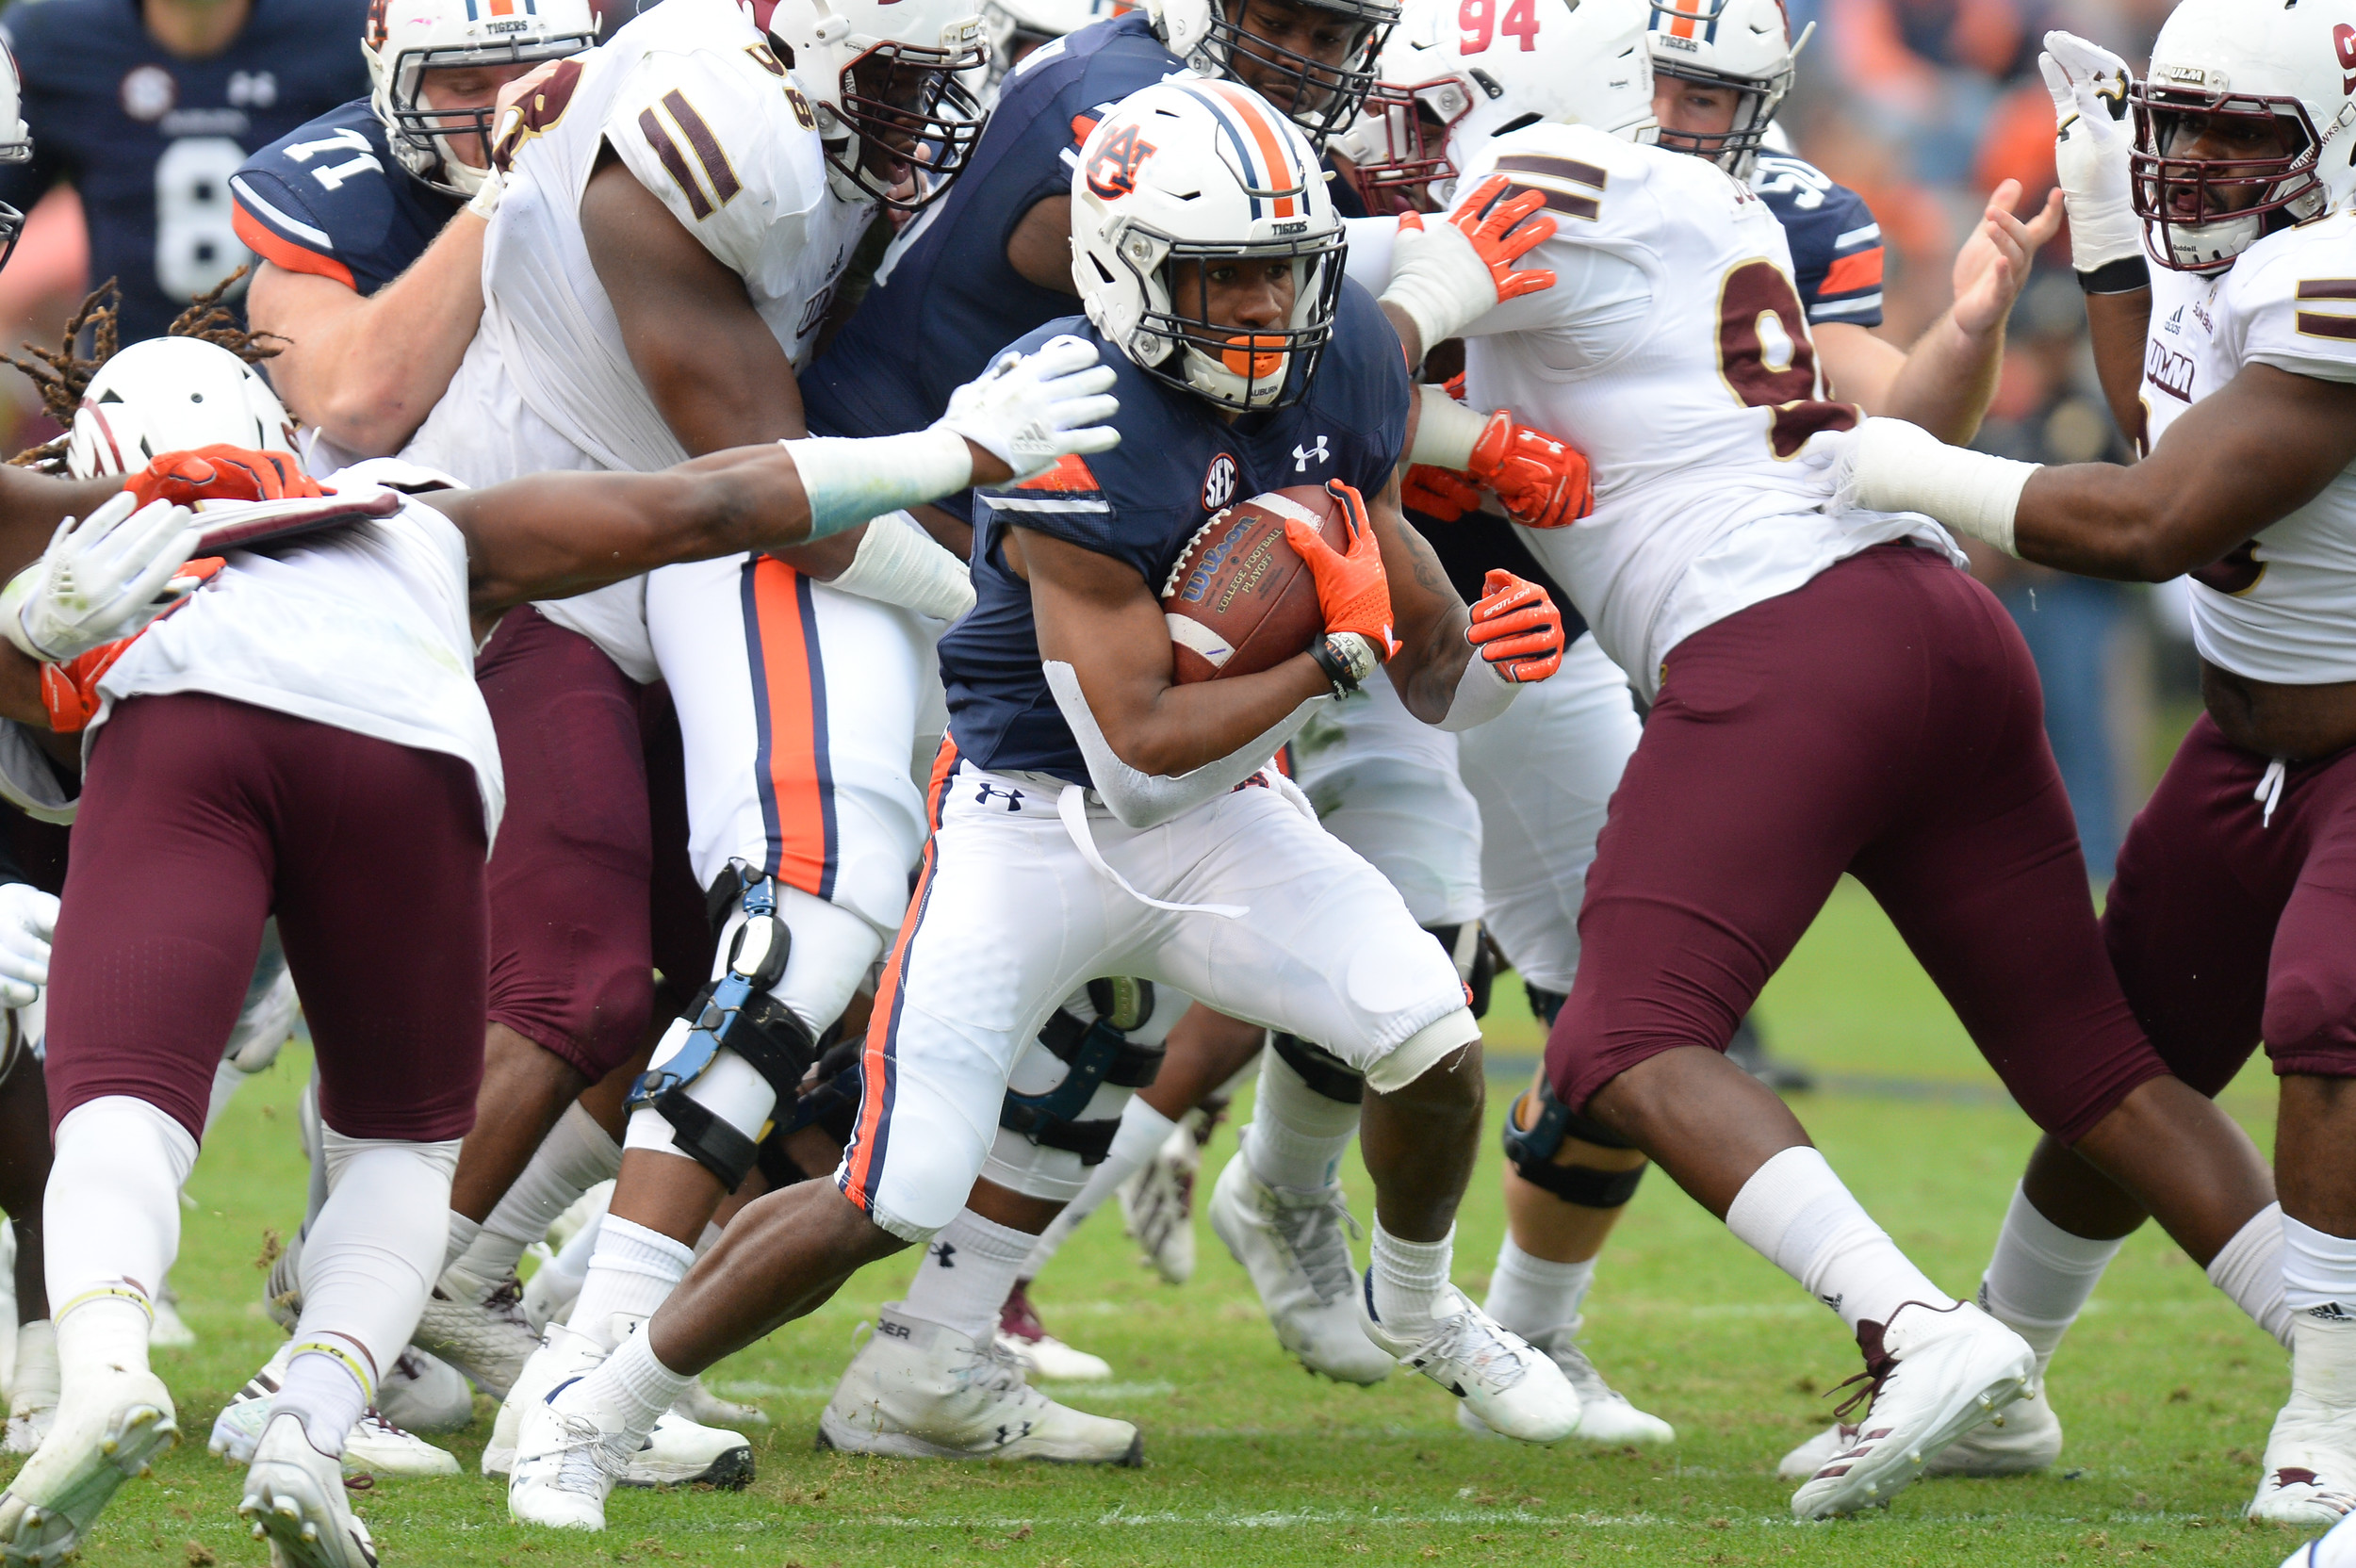 Auburn Tigers running back Kam Martin (9) looks for yardage during the second half of Saturday's game, at Jordan-Hare Stadium.